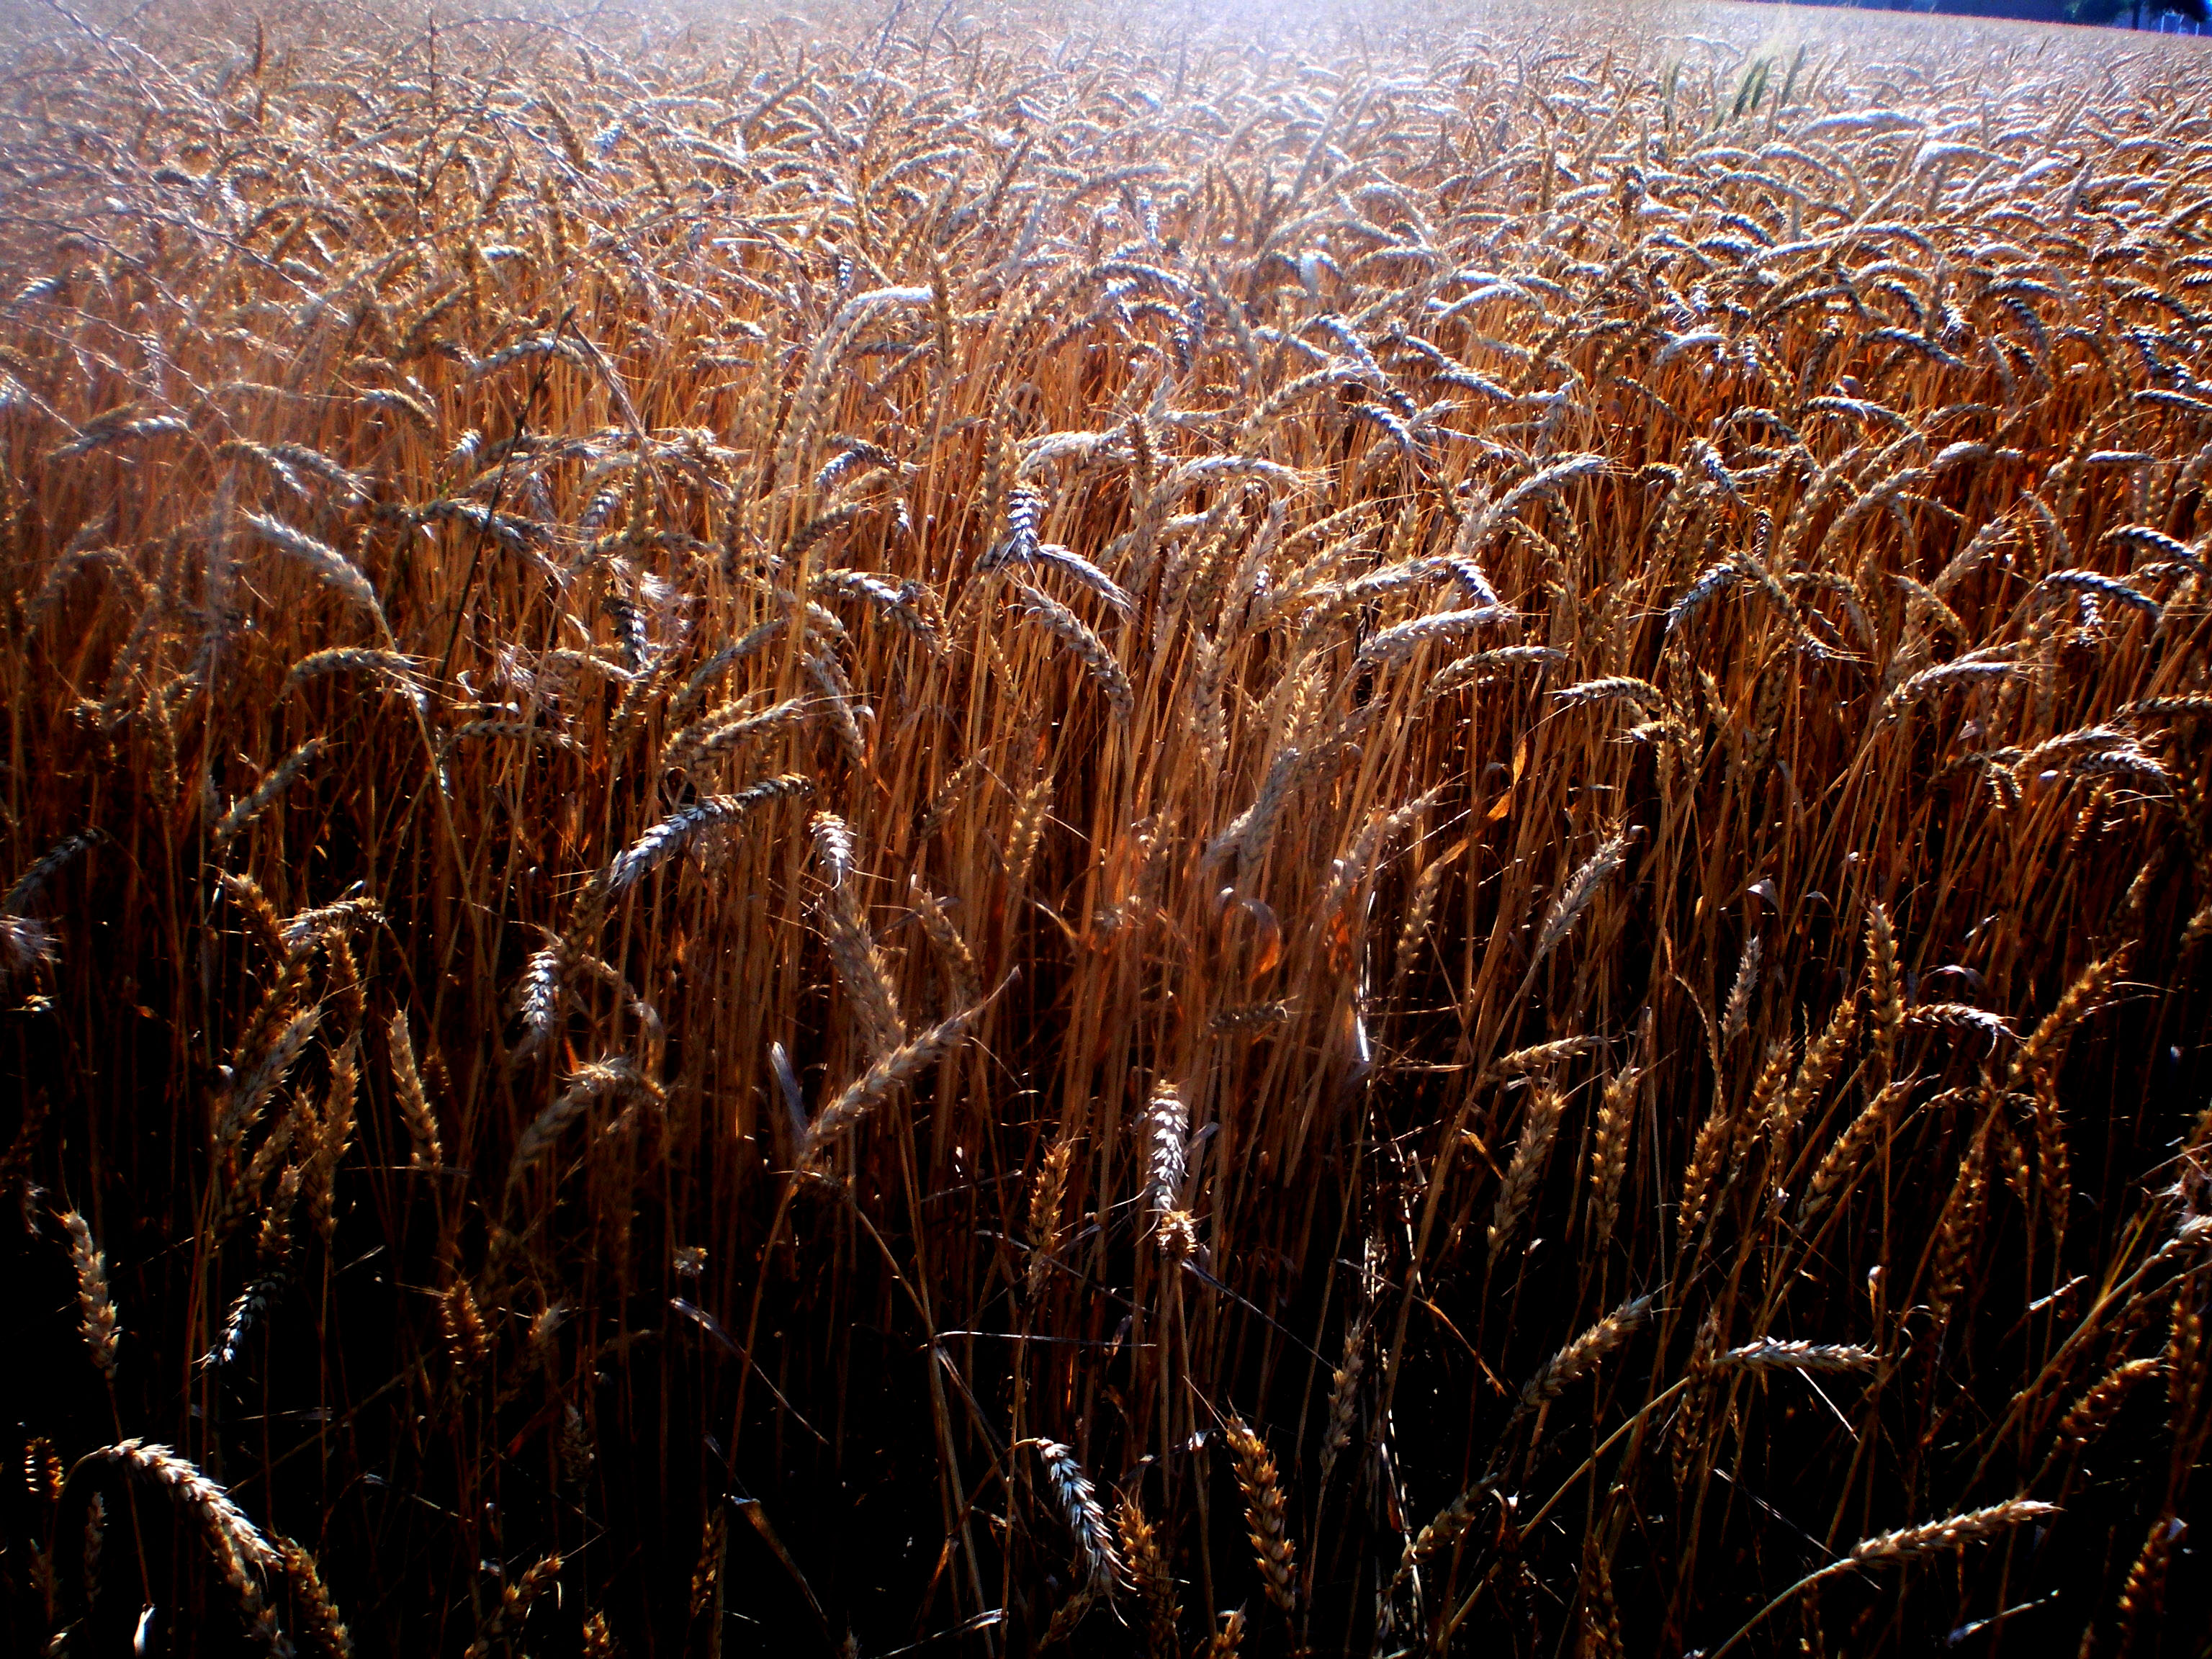 Wheat ready to harvest in the Delta